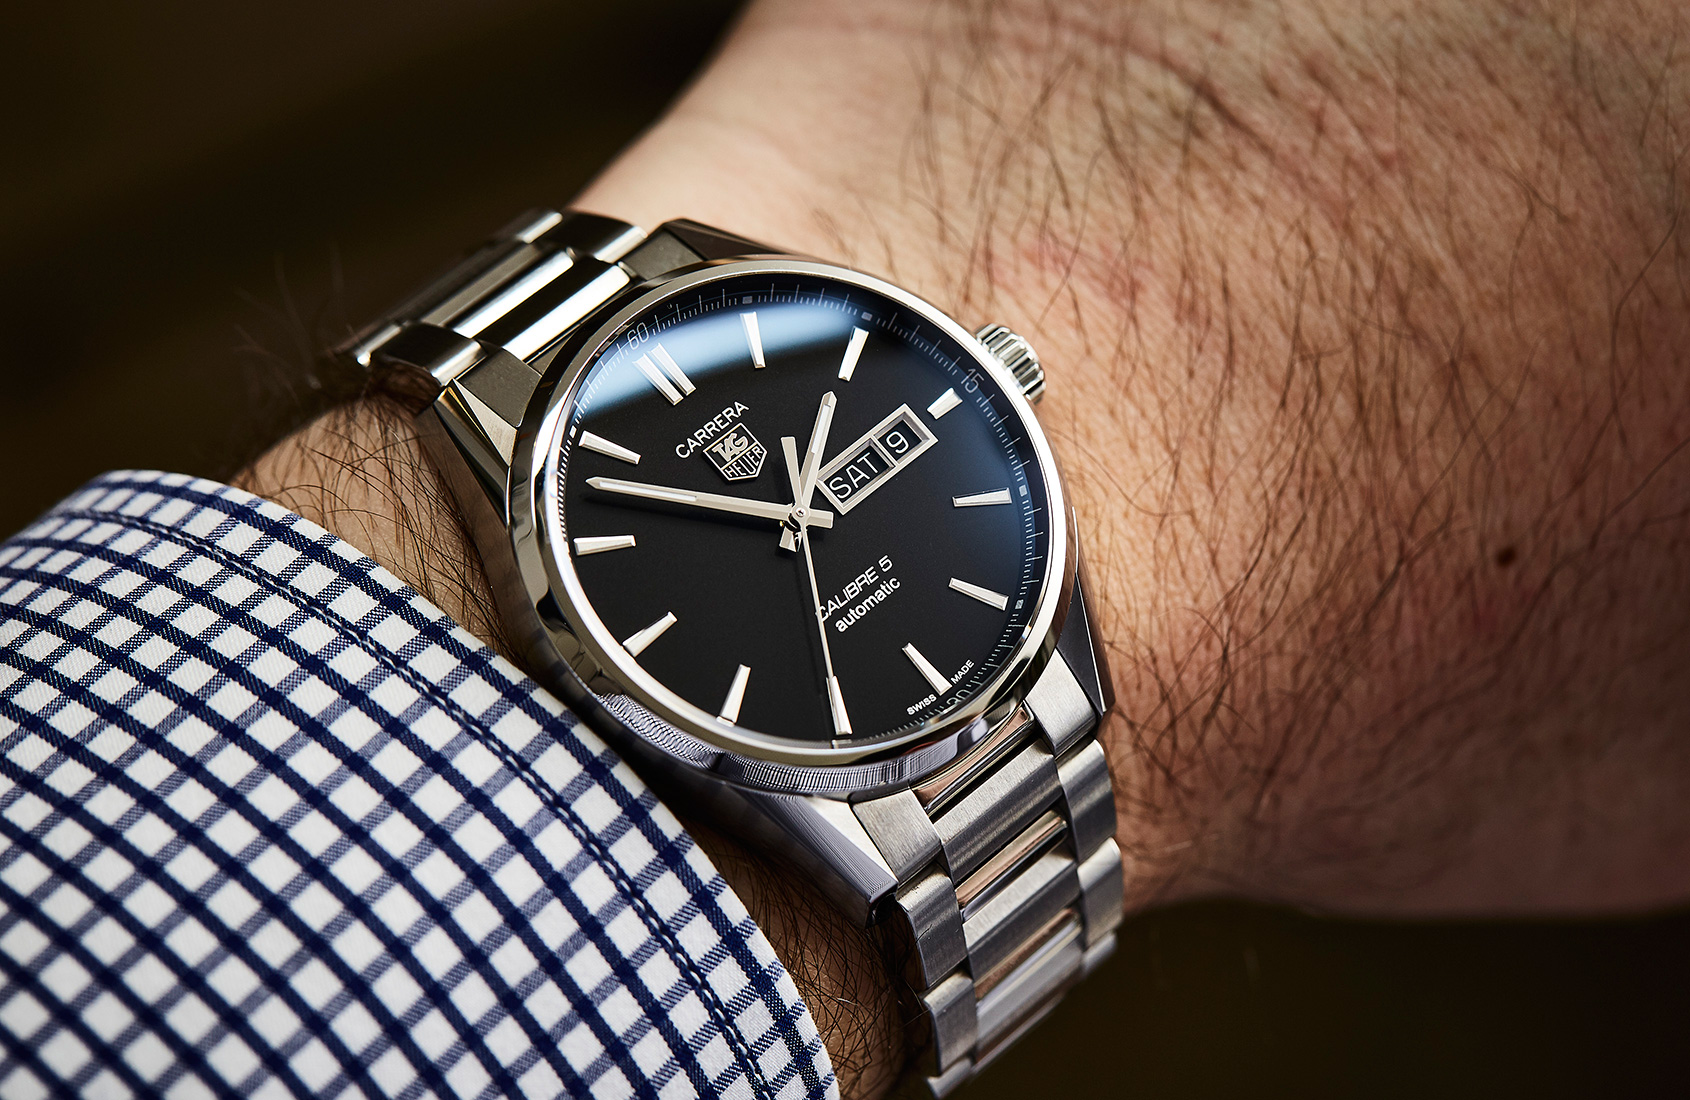 The TAG Heuer Carrera Calibre 5 Day-Date is a near-perfect daily wearer